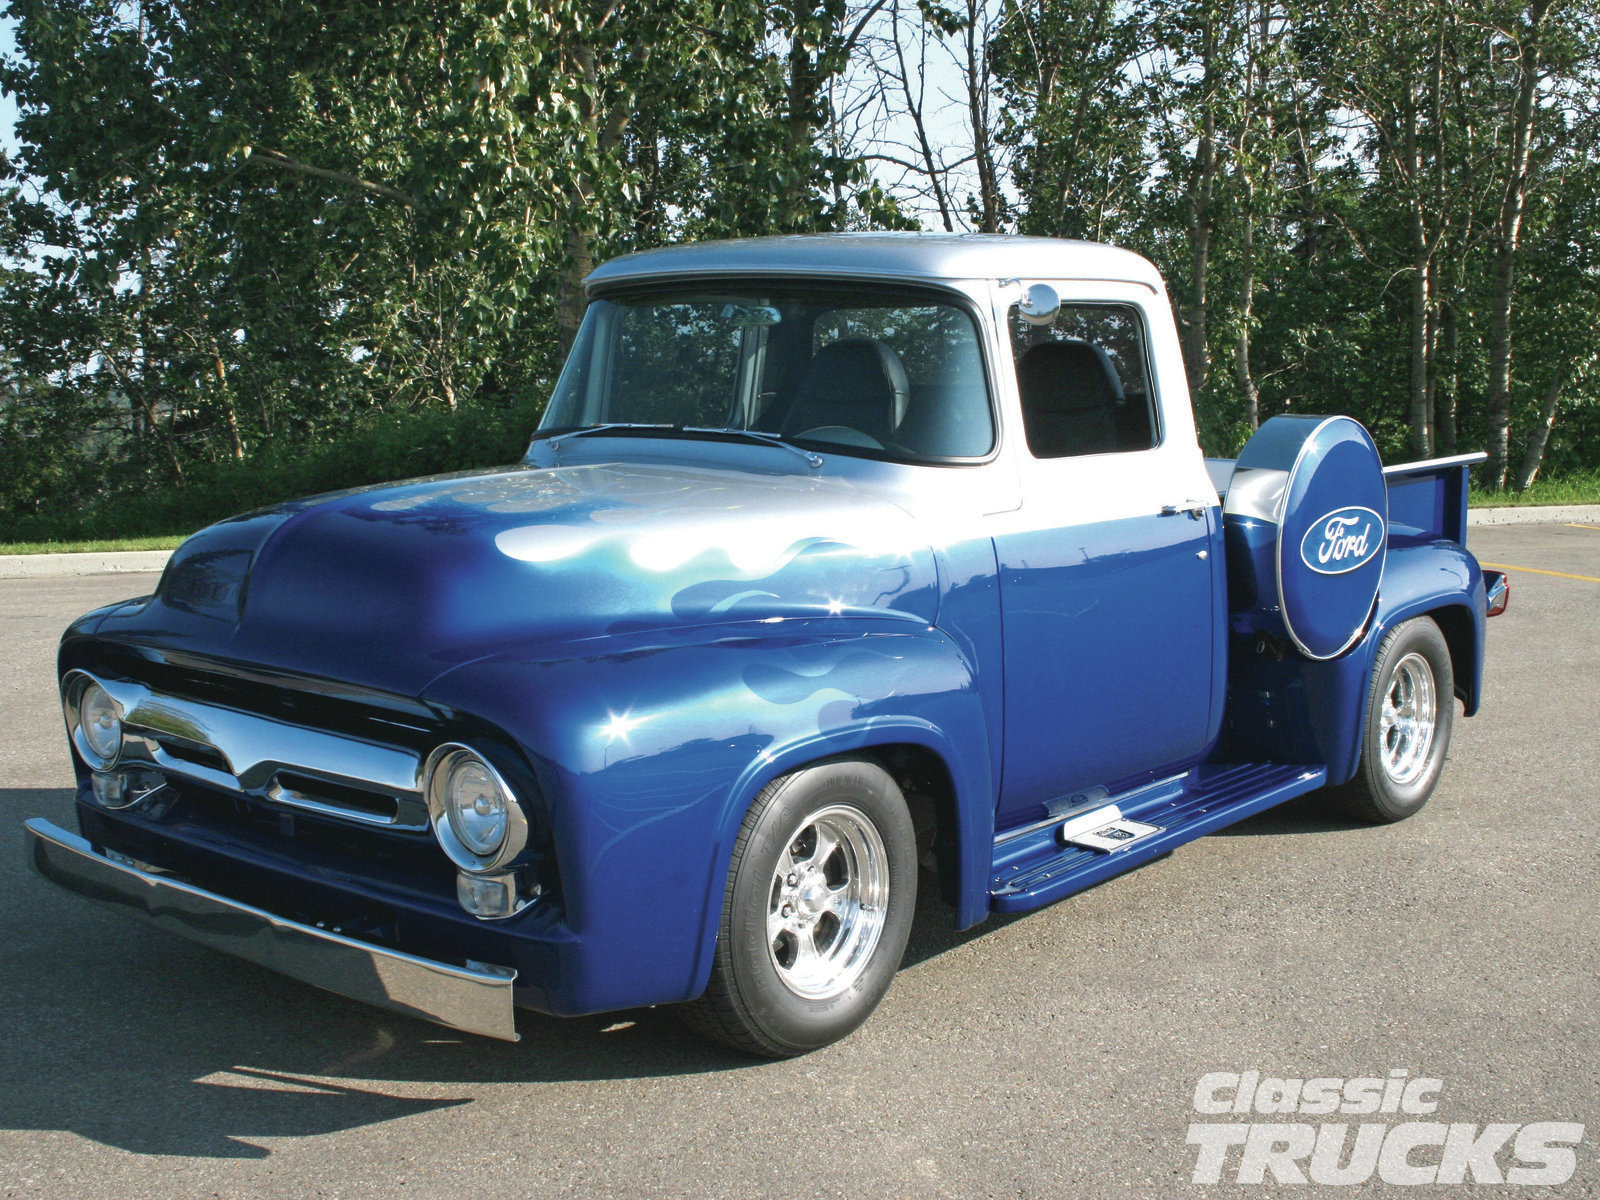 Ford truck photo - 2